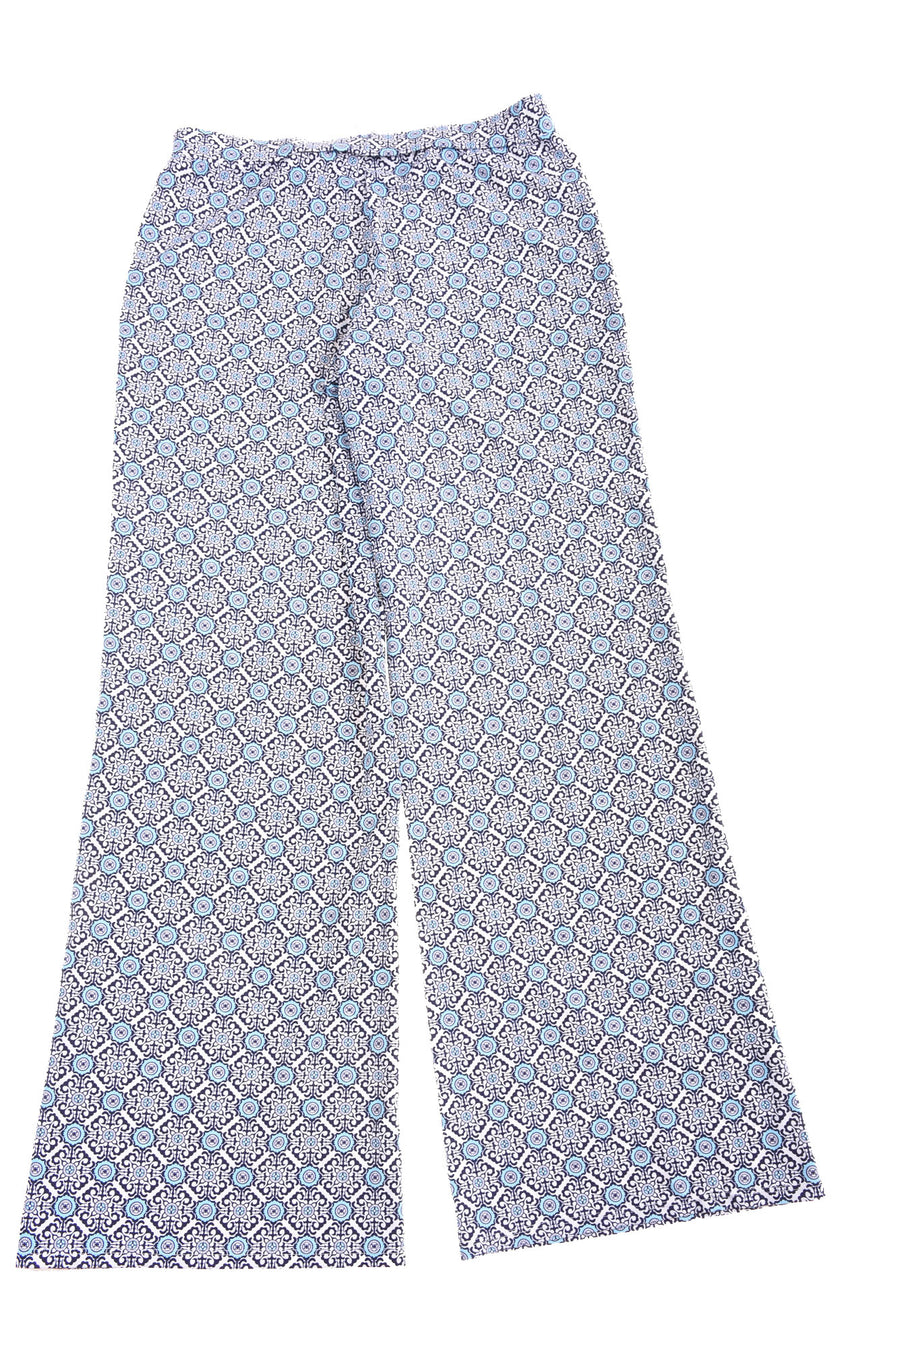 USED Jude Connally Women's Pants Small Blue & White